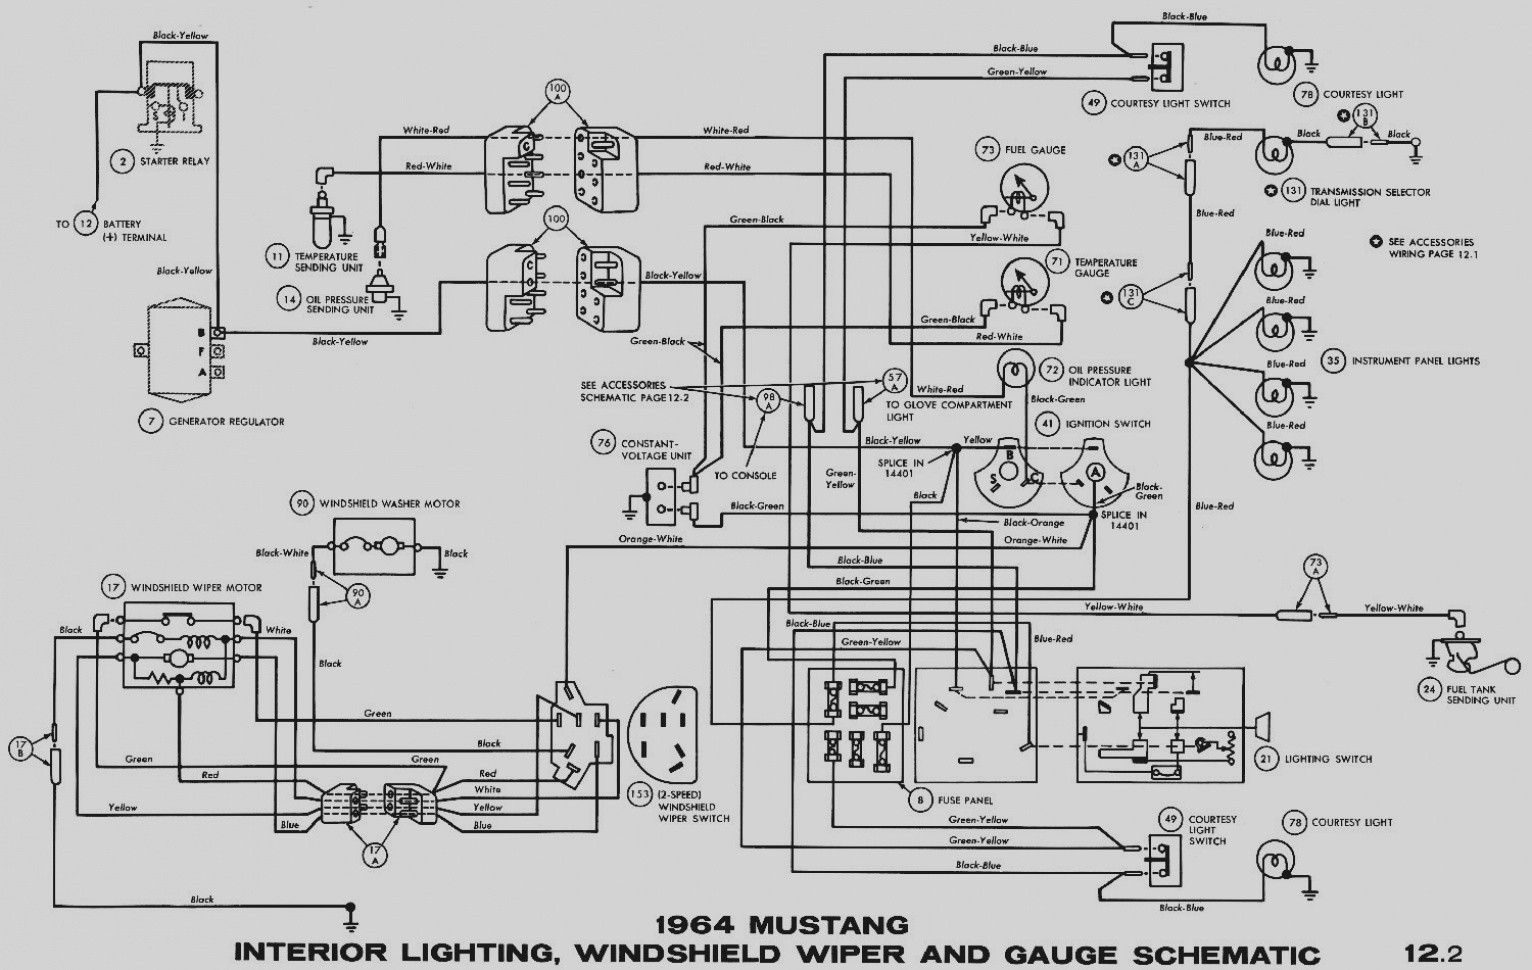 Ignition Wiring Diagram For 1970 Ford Torino Fuse Box Enthusiast Diagrams U2022 Rh Rasalibre Co Truck 1969 F100